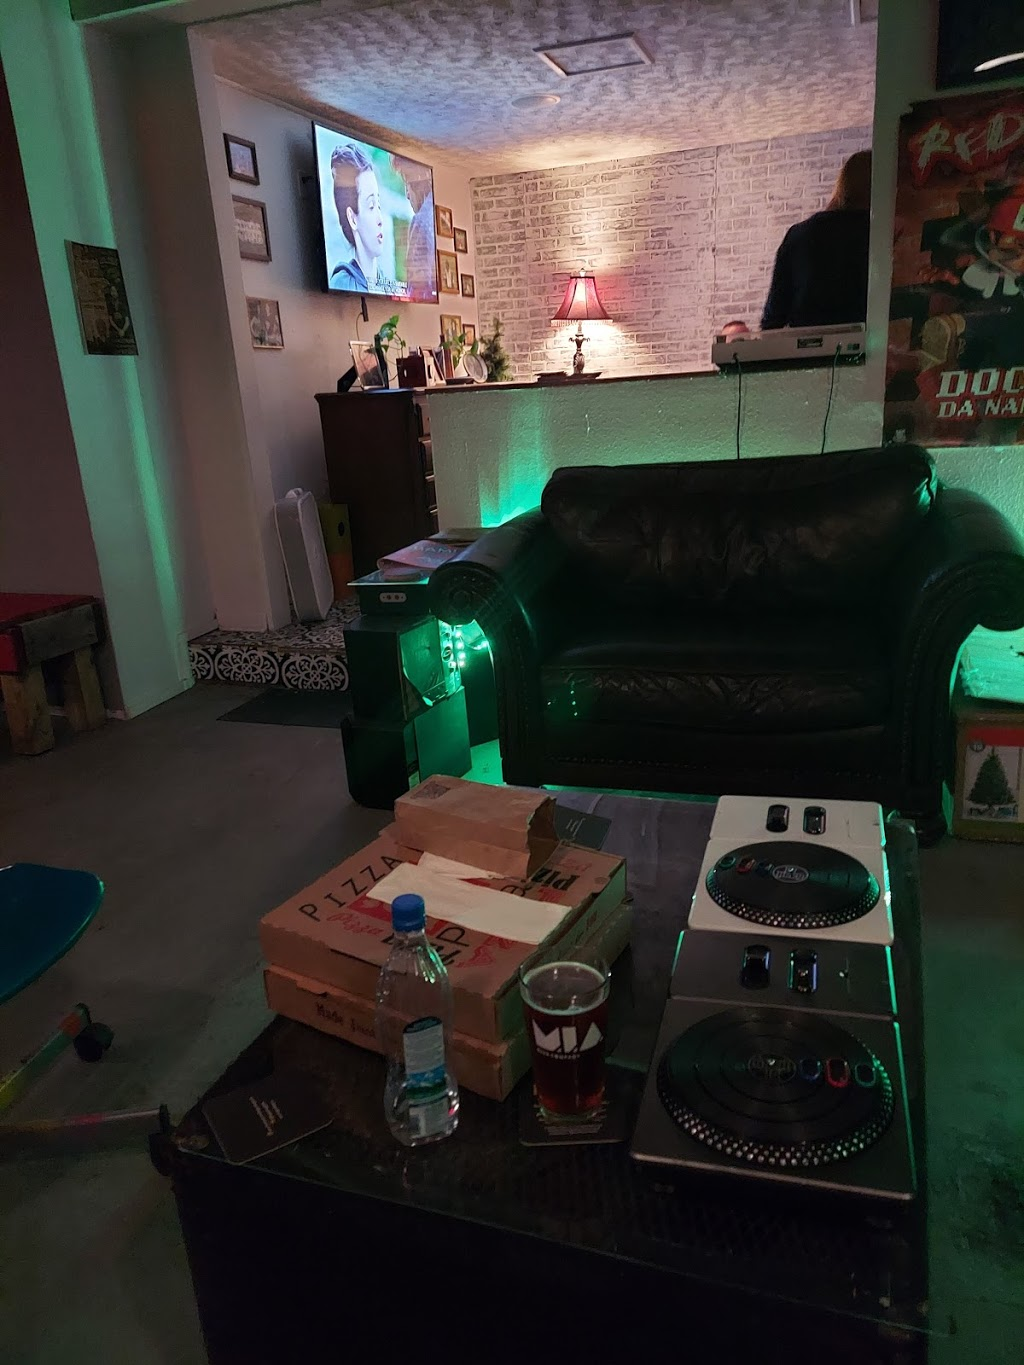 The Commission Beer Chamber - bar    Photo 1 of 10   Address: 2230 Curry Ford Rd, Orlando, FL 32806, USA   Phone: (407) 271-4028